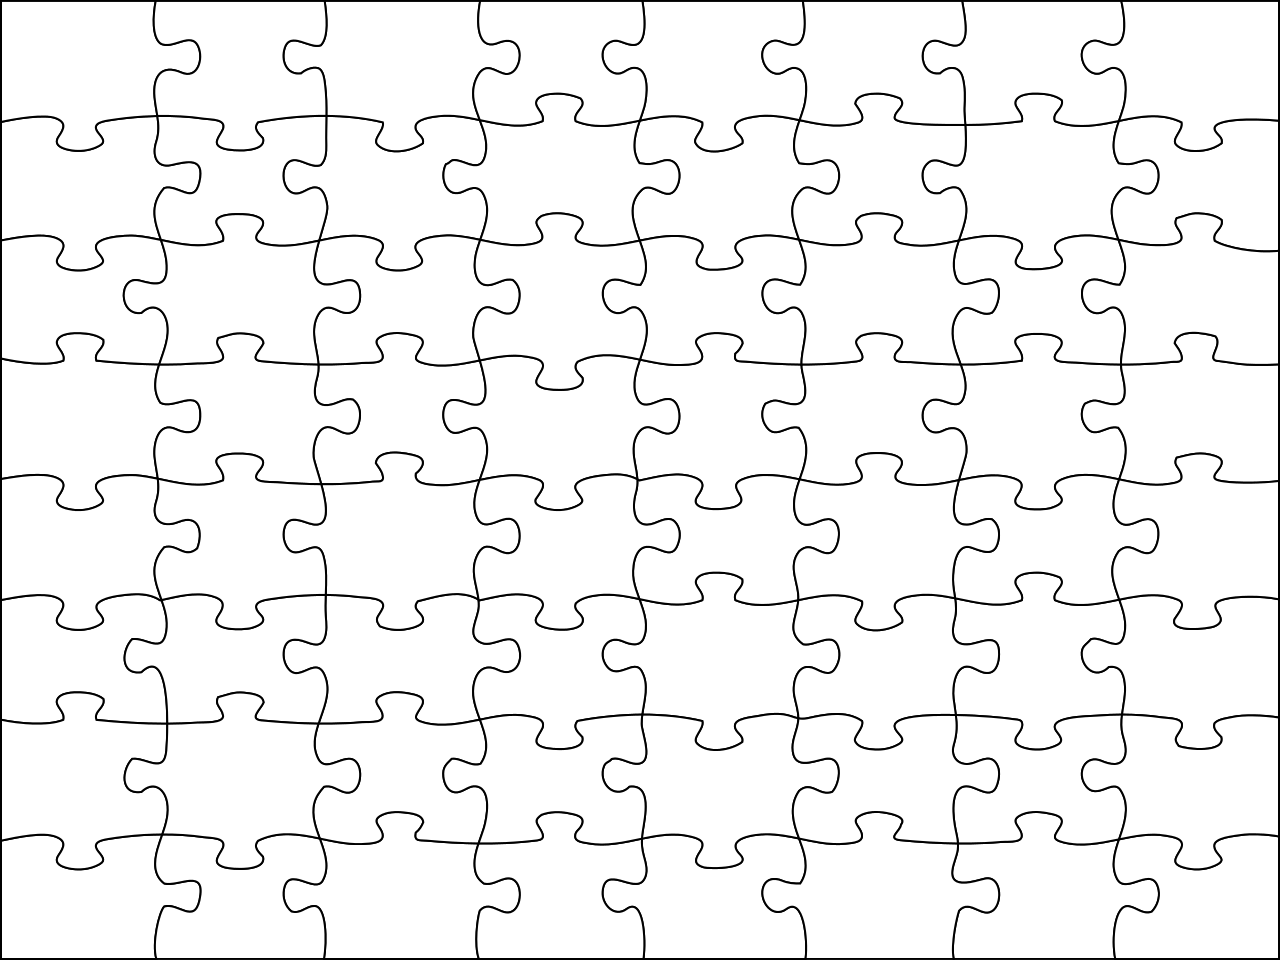 File:Jigsaw Puzzle.svg - Wikimedia Commons